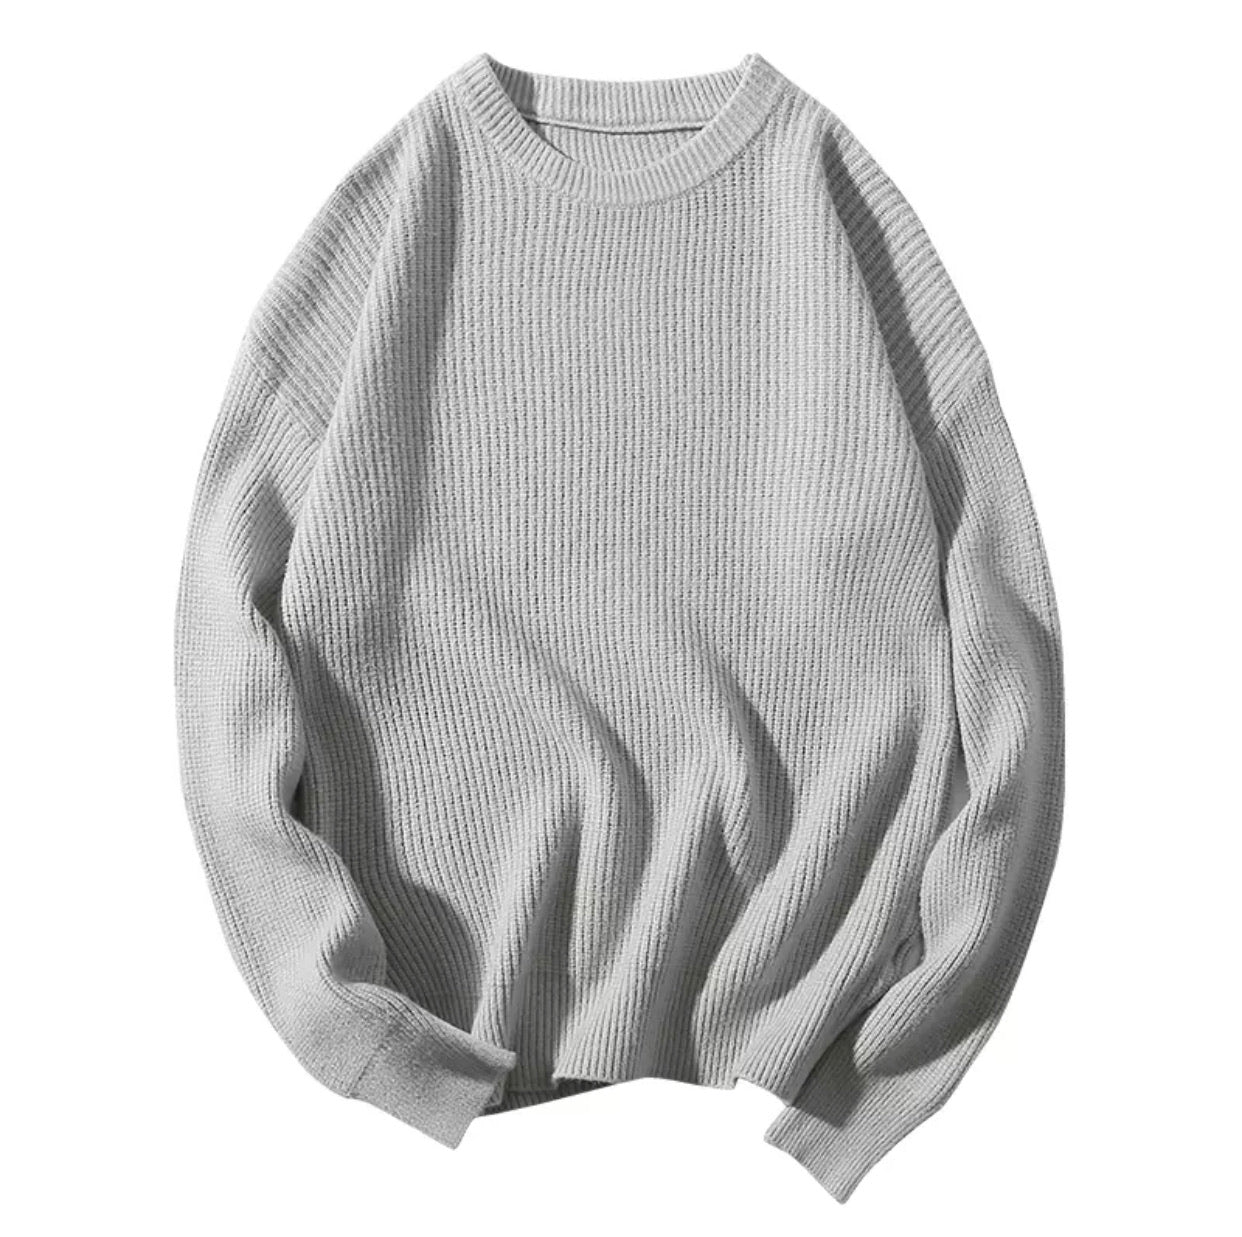 The Everyday Sweater - Up to Size XXXL